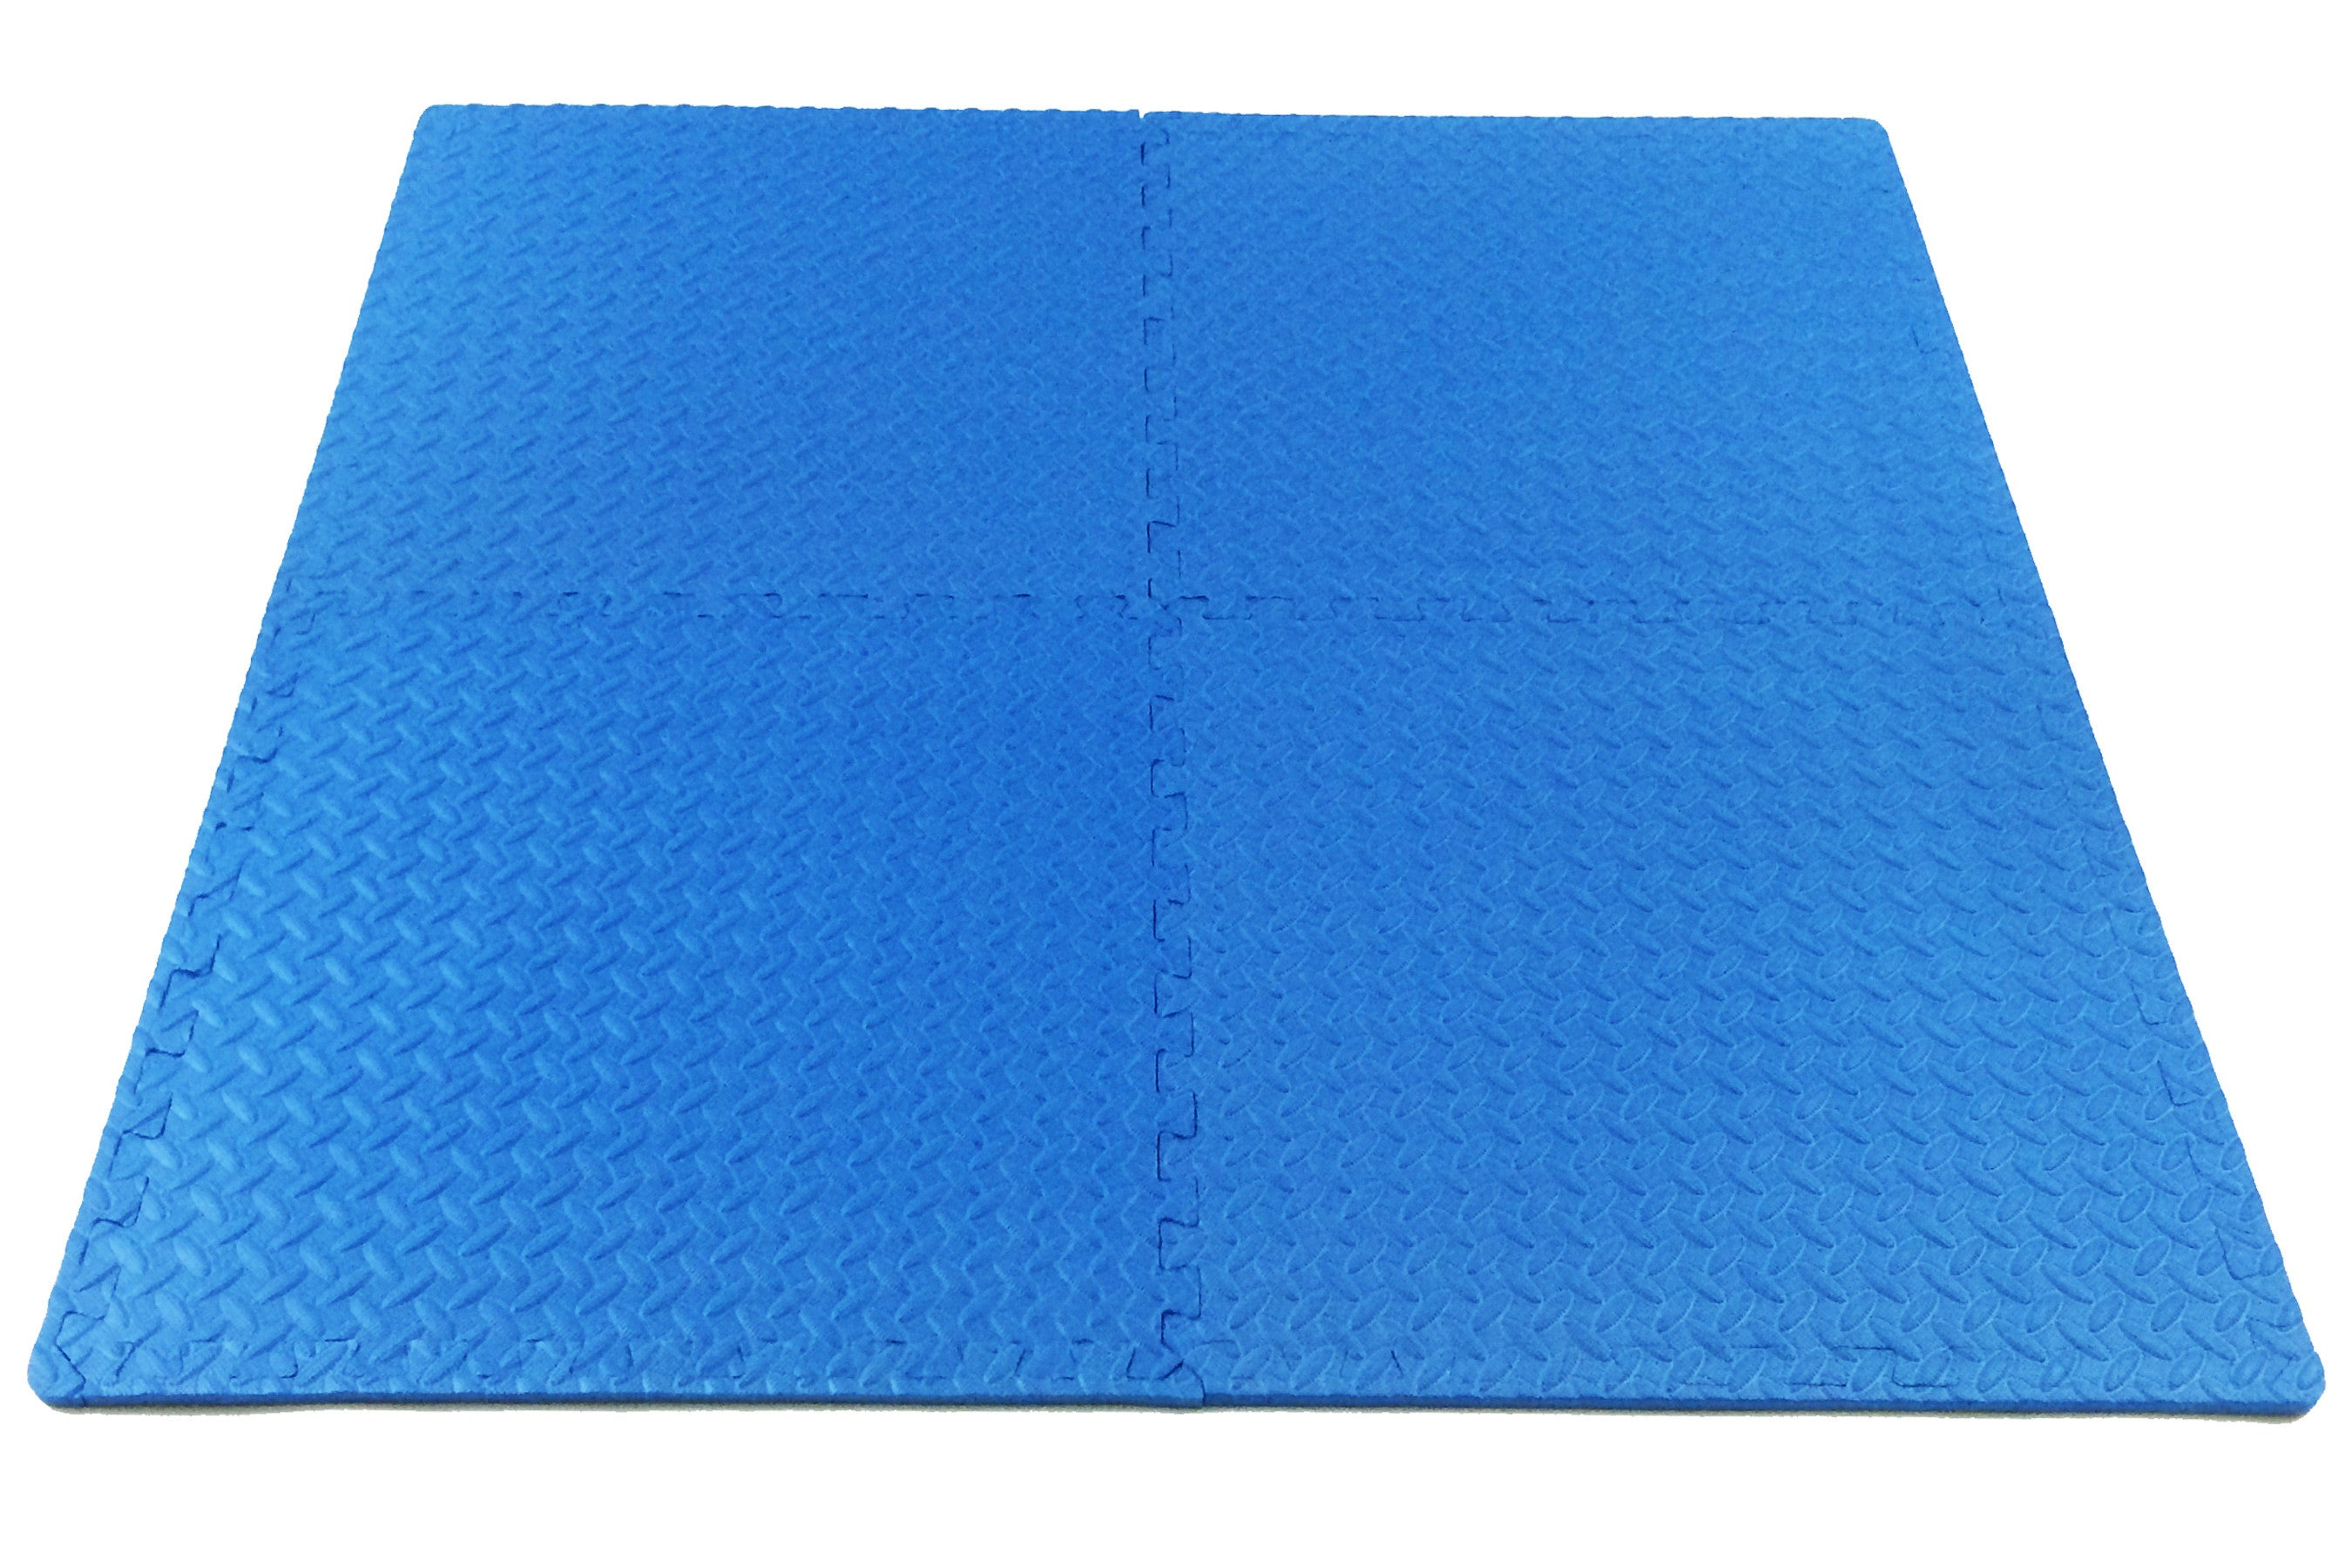 puzzle blue inch products mat exercise prosource mats